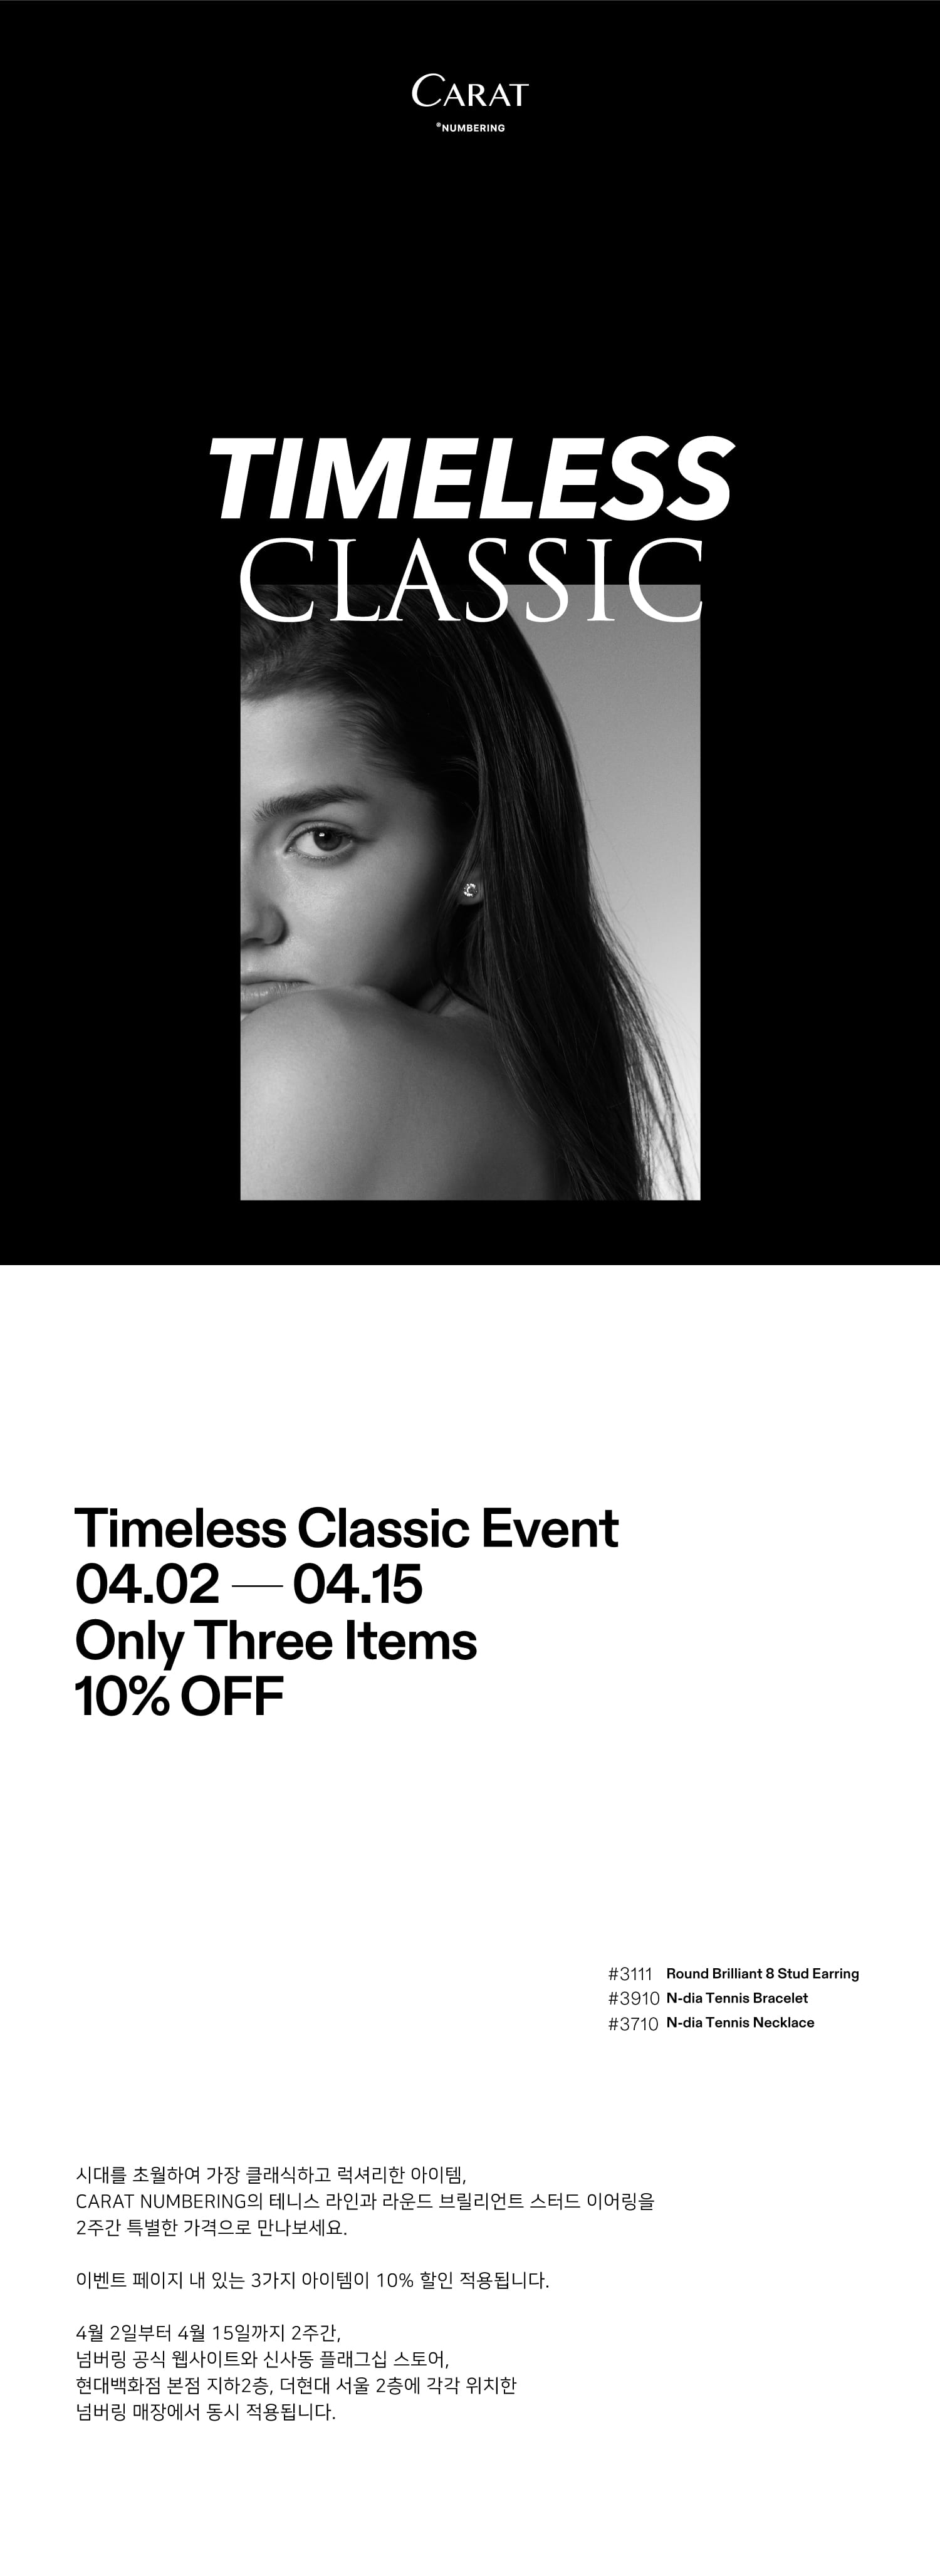 TimelessClassic event